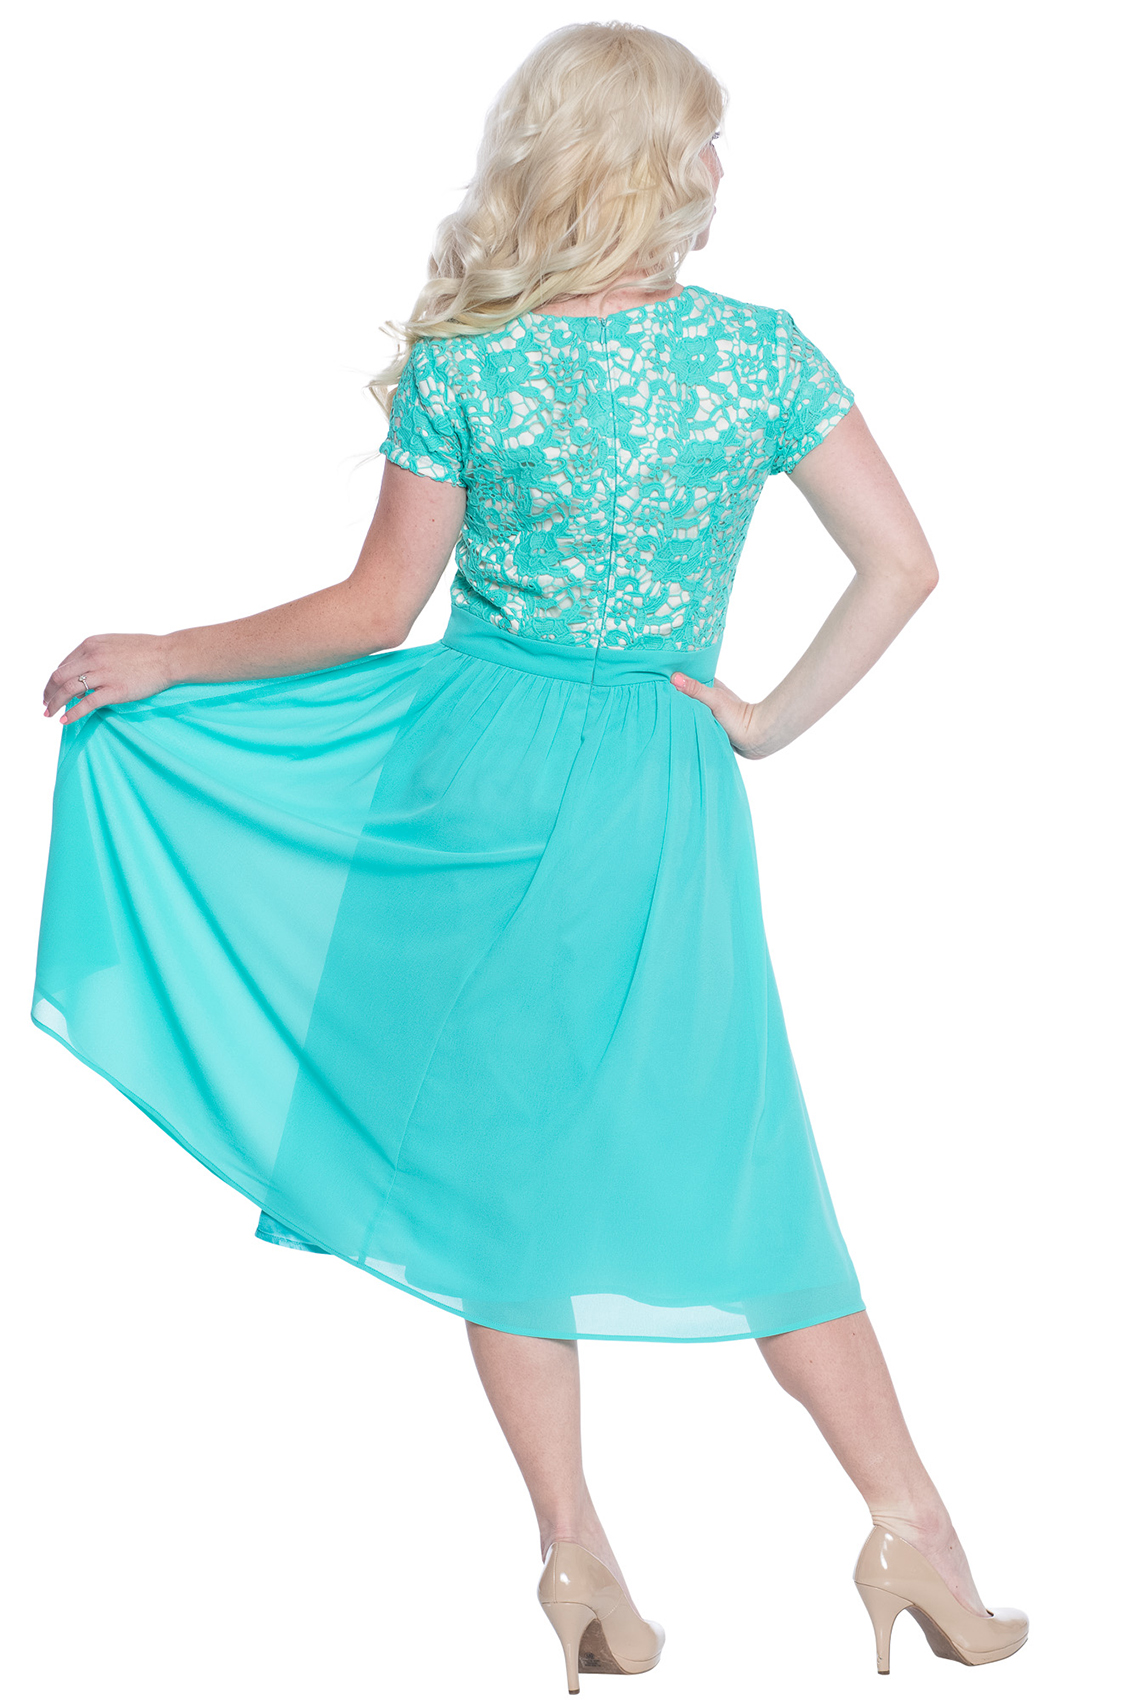 Semi formal modest bridesmaid dress in turquoise blue tiffany olivia modest prom bridesmaid dress in turquoise tiffany blue aqua ombrellifo Image collections